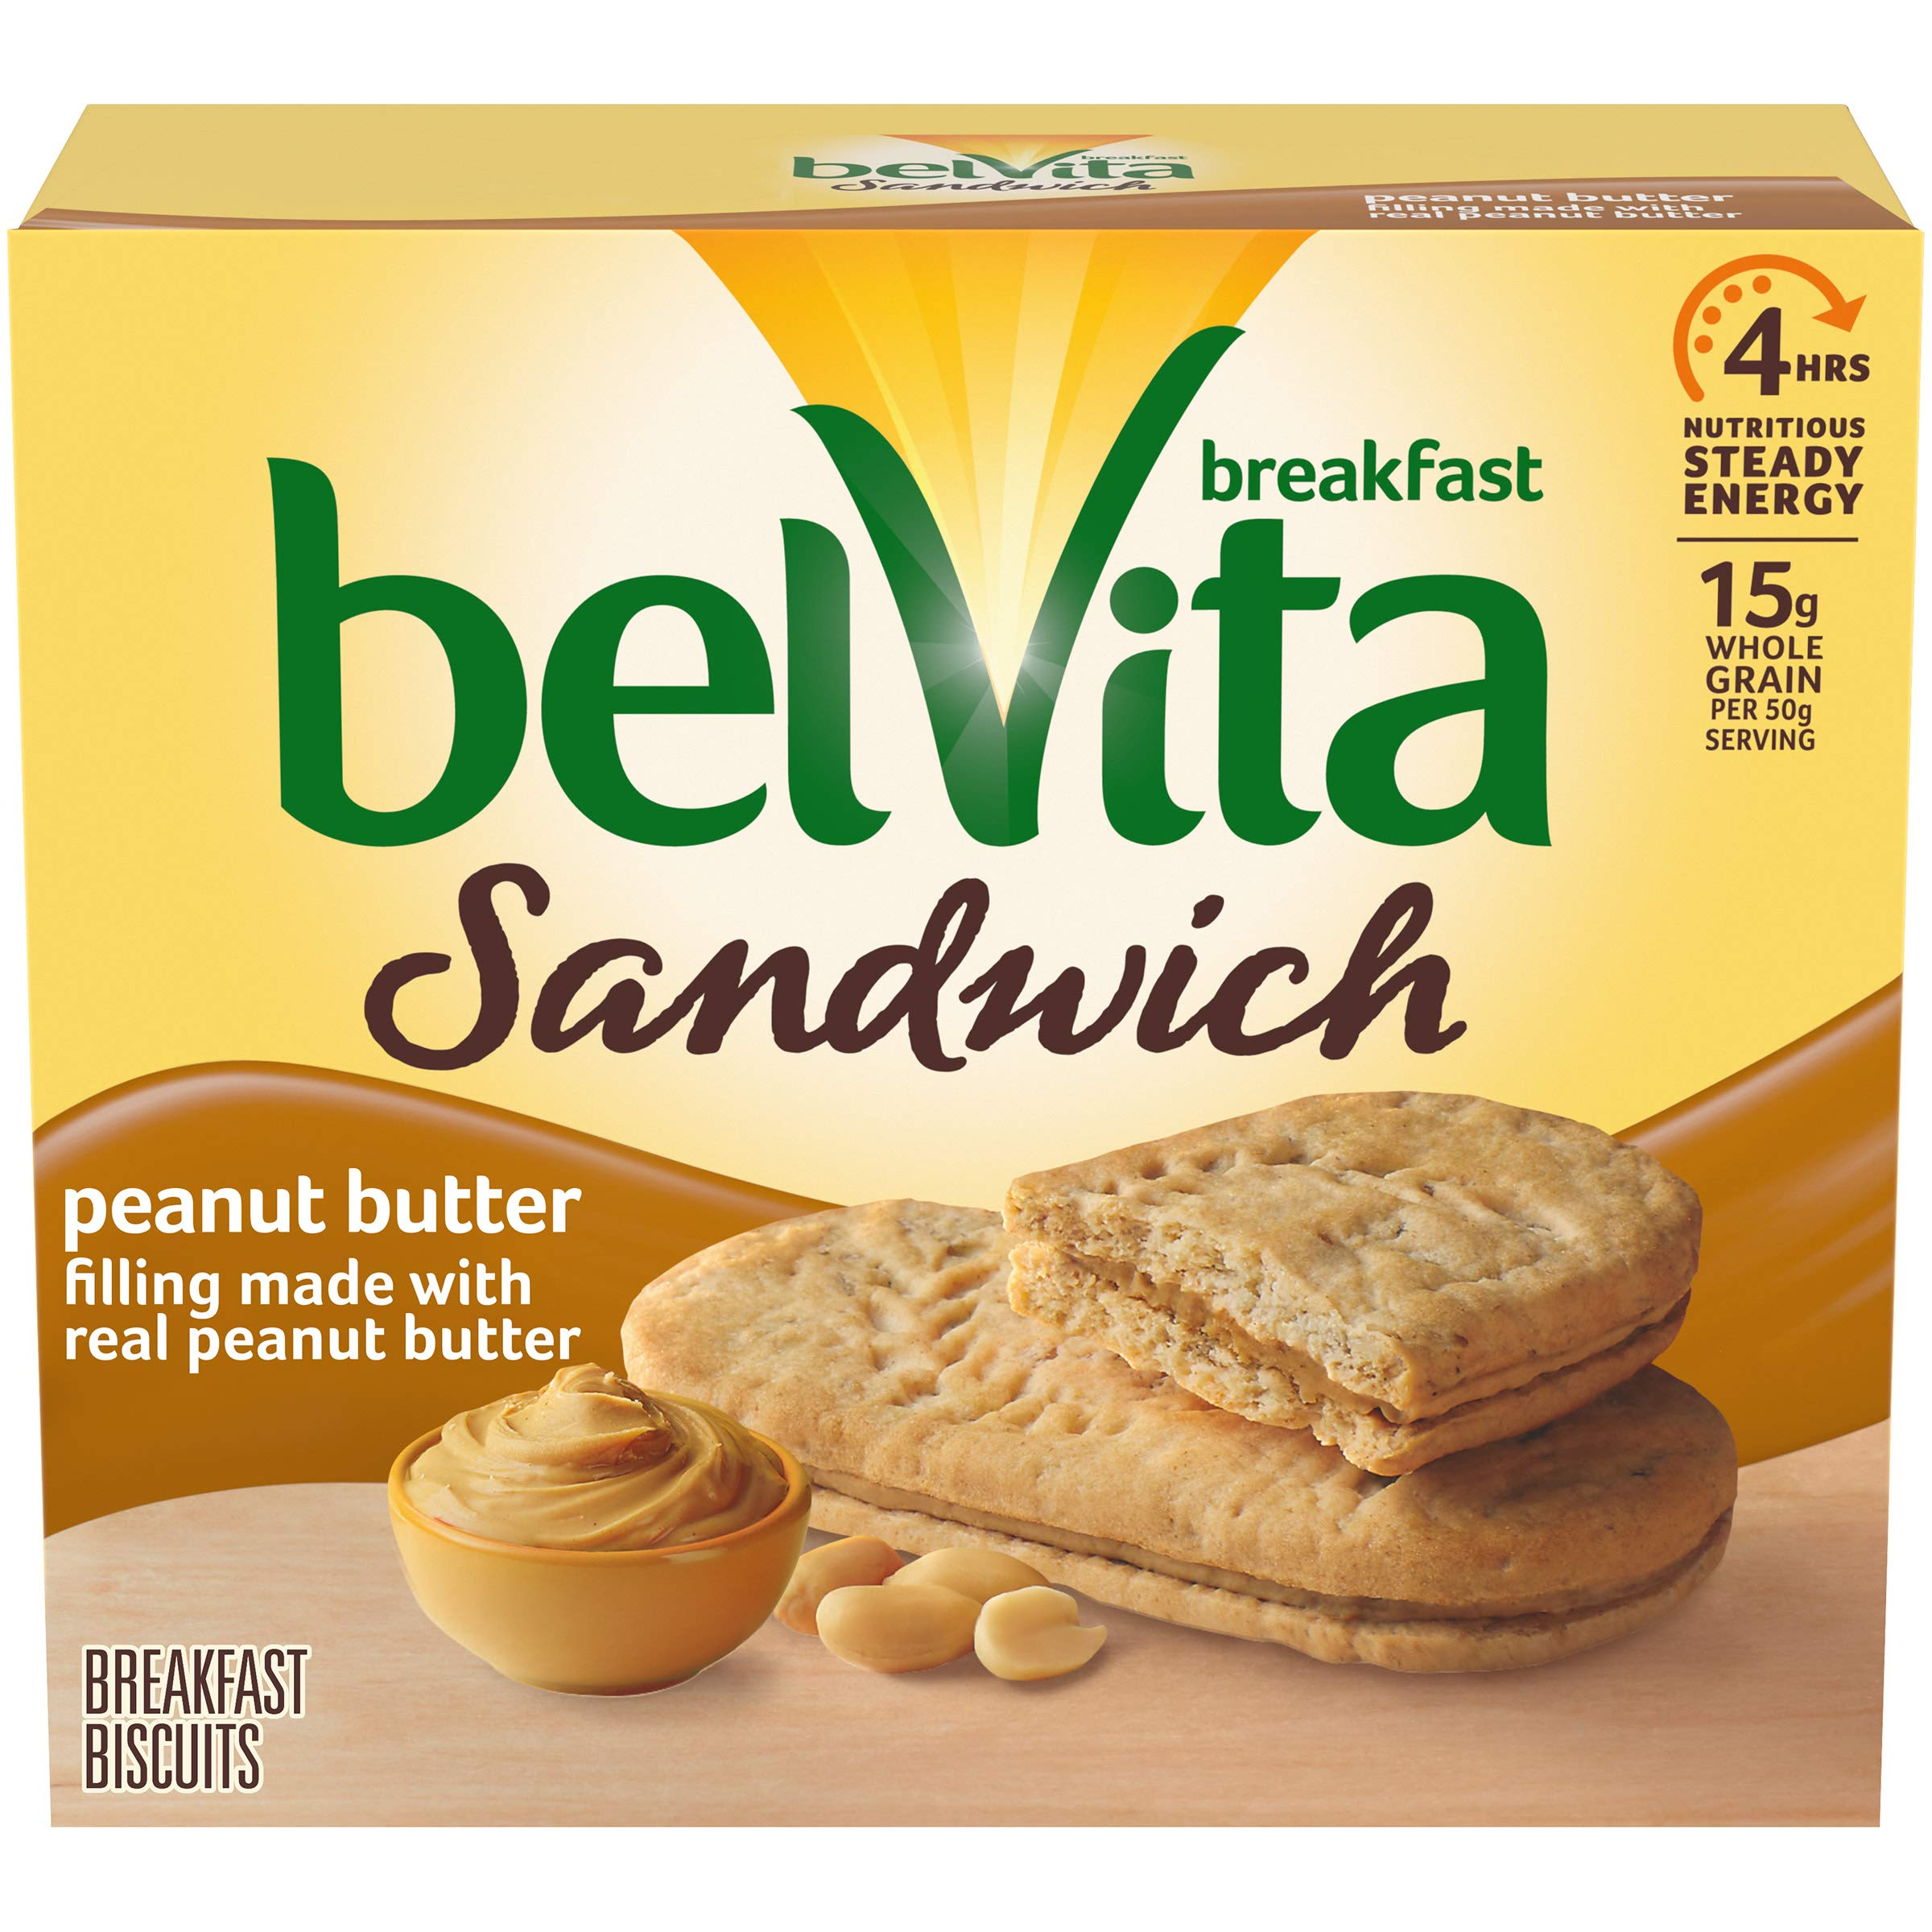 belVita Sandwich Peanut Butter Breakfast Biscuits, 5 Packs (2 Sandwiches Per Pack)